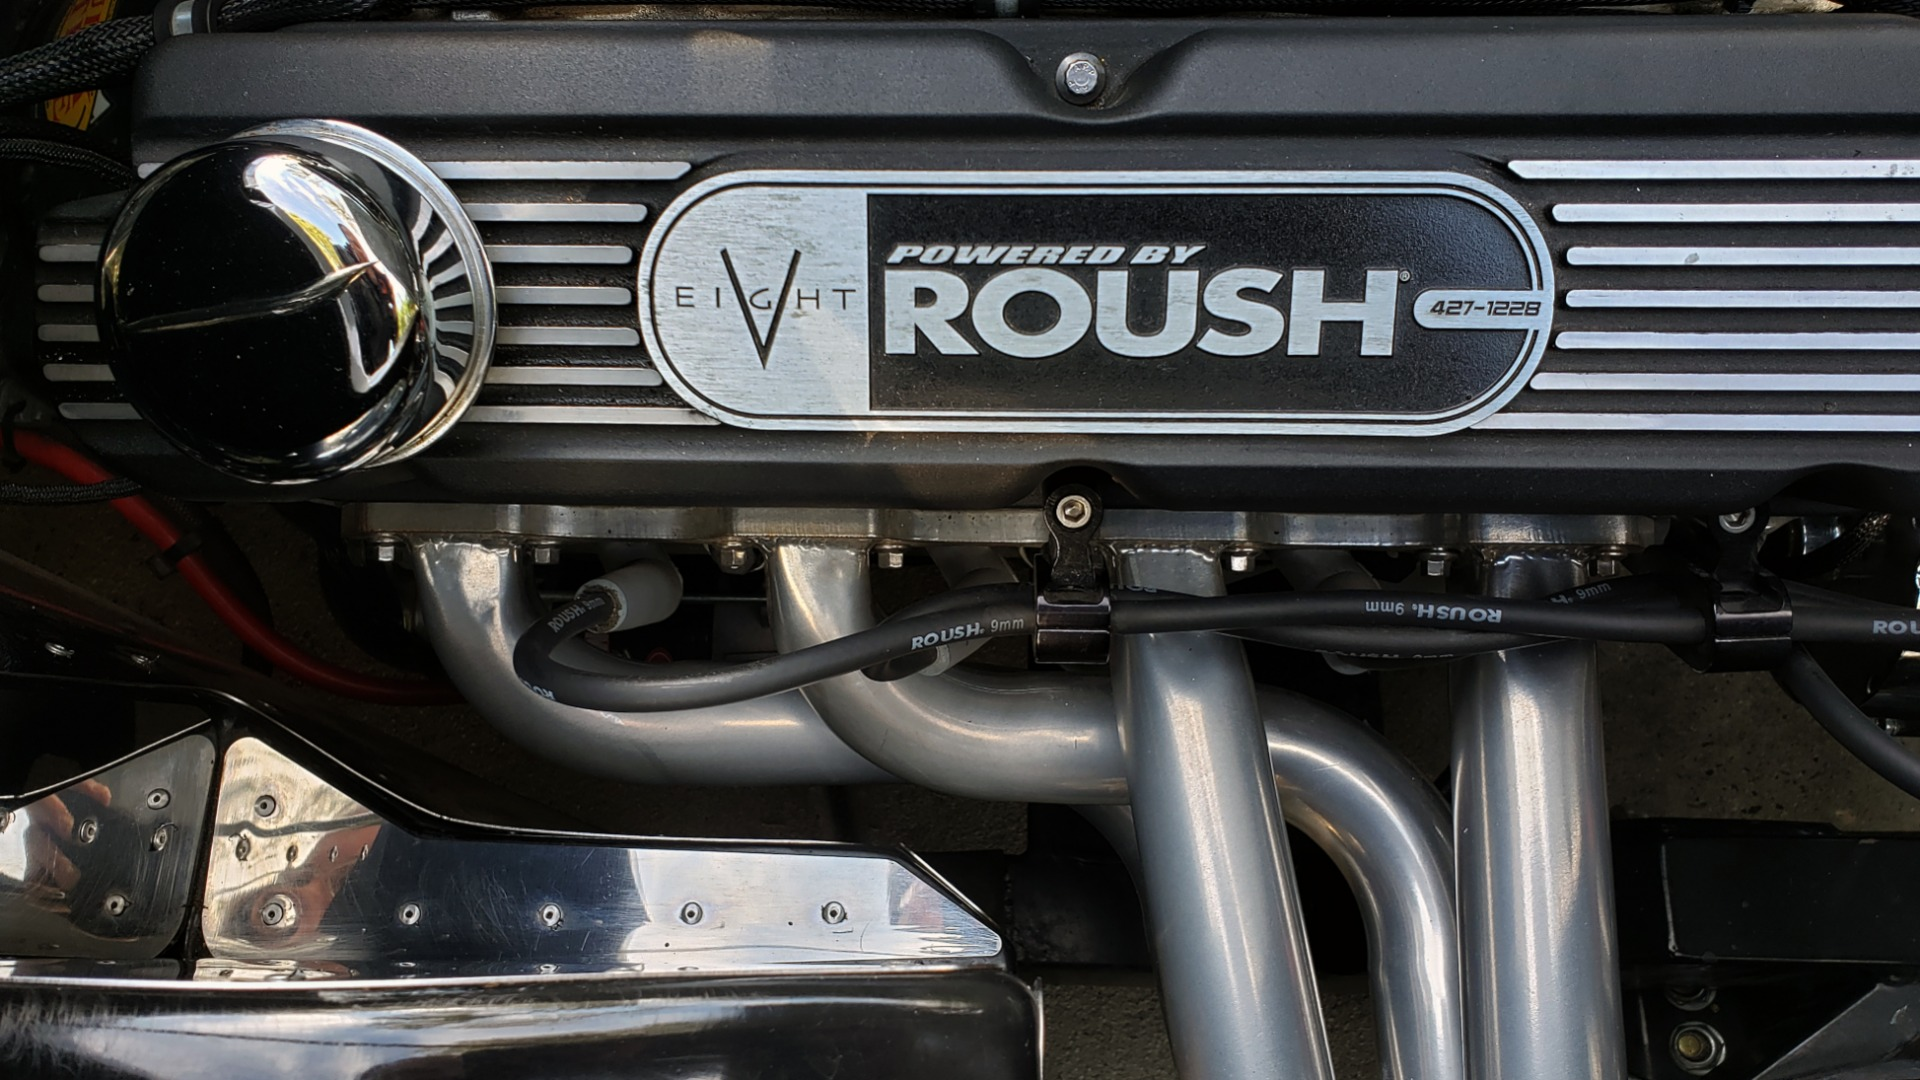 Used 1965 Ford COBRA 427 ROADSTER BY BRACKDRAFT RACING ROUSH 553HP V8 / TREMEC 6-SPD / PWR STRNG for sale $74,999 at Formula Imports in Charlotte NC 28227 50